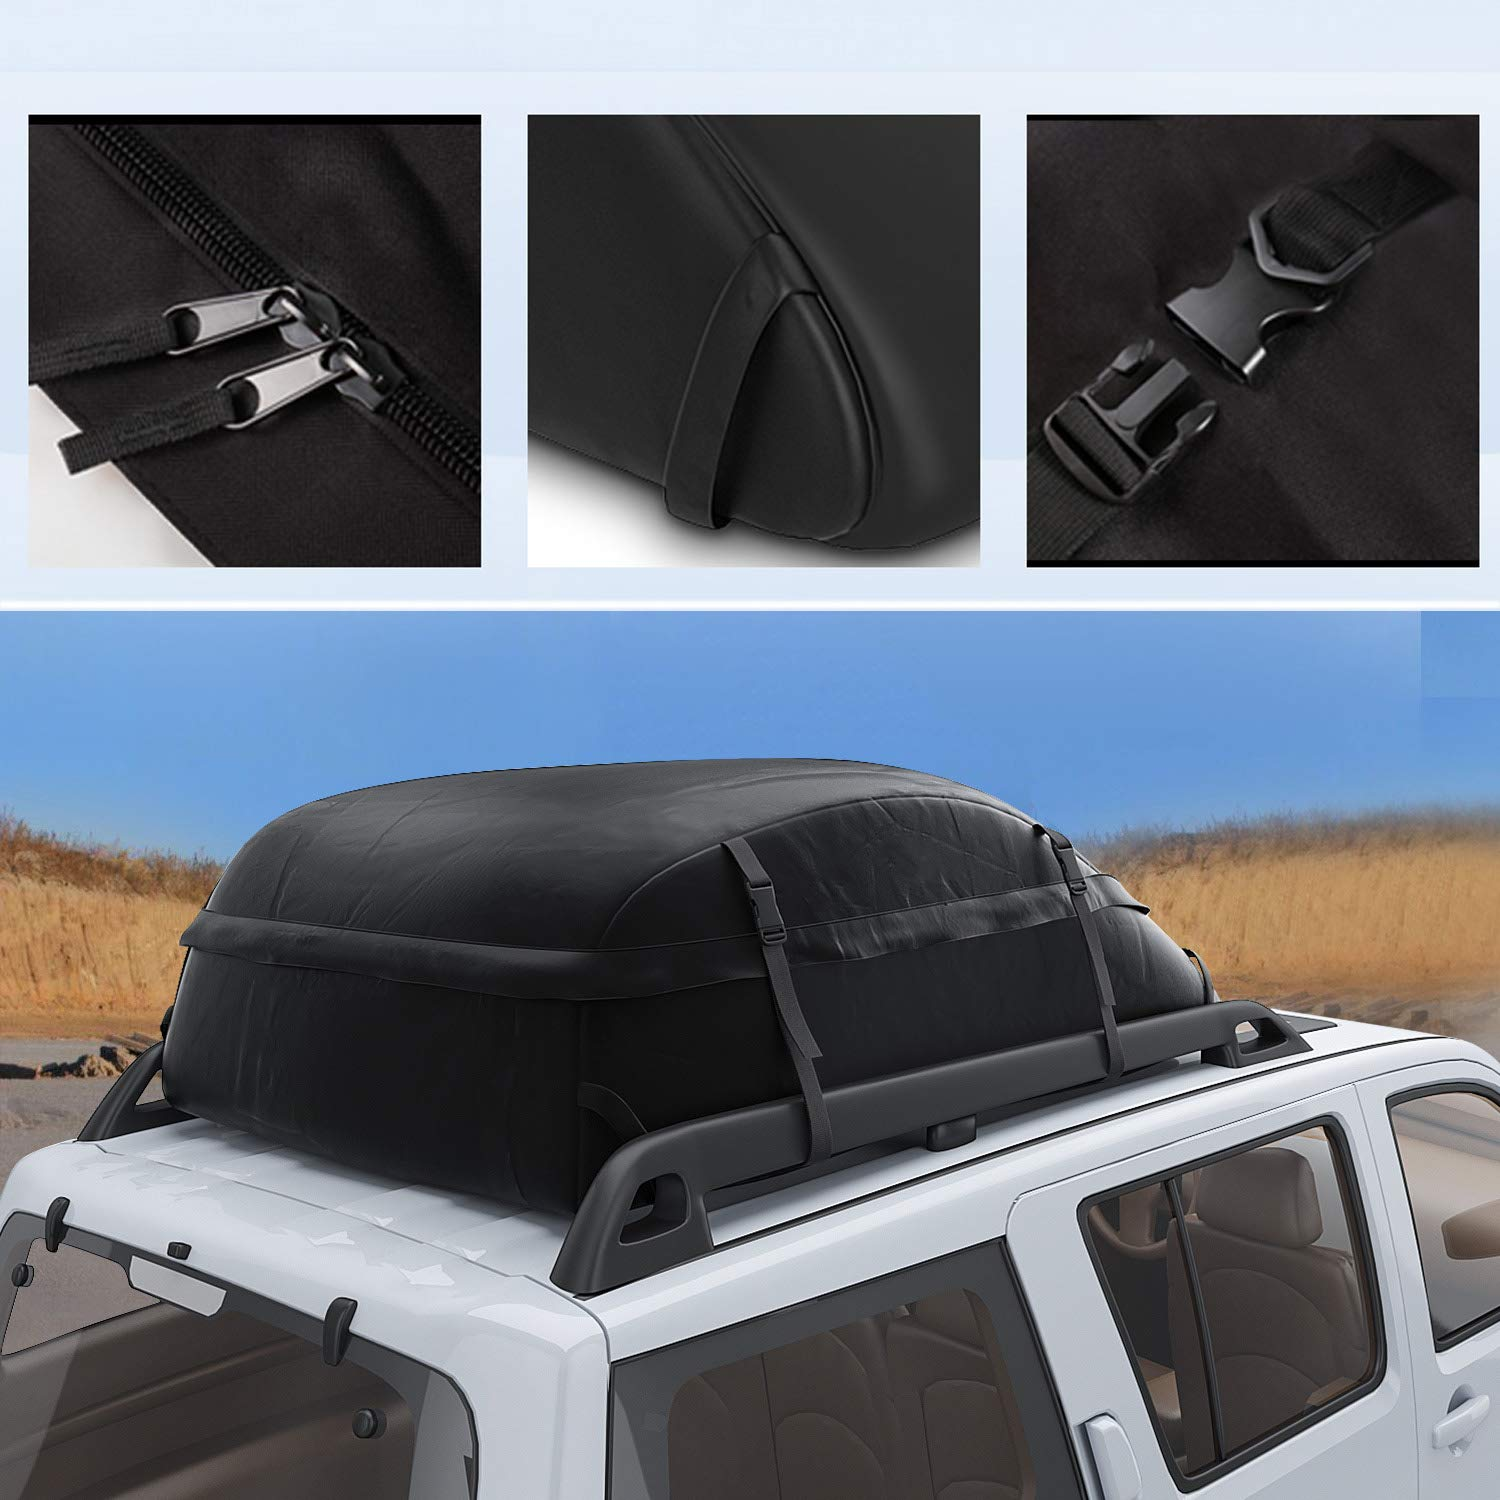 Miageek Waterproof Cross Country Car Roof Top Carrier Water Resistant Non Slip Soft Rooftop Travel Cargo Bag Storage for Any Car Van or SUV//with Straps S